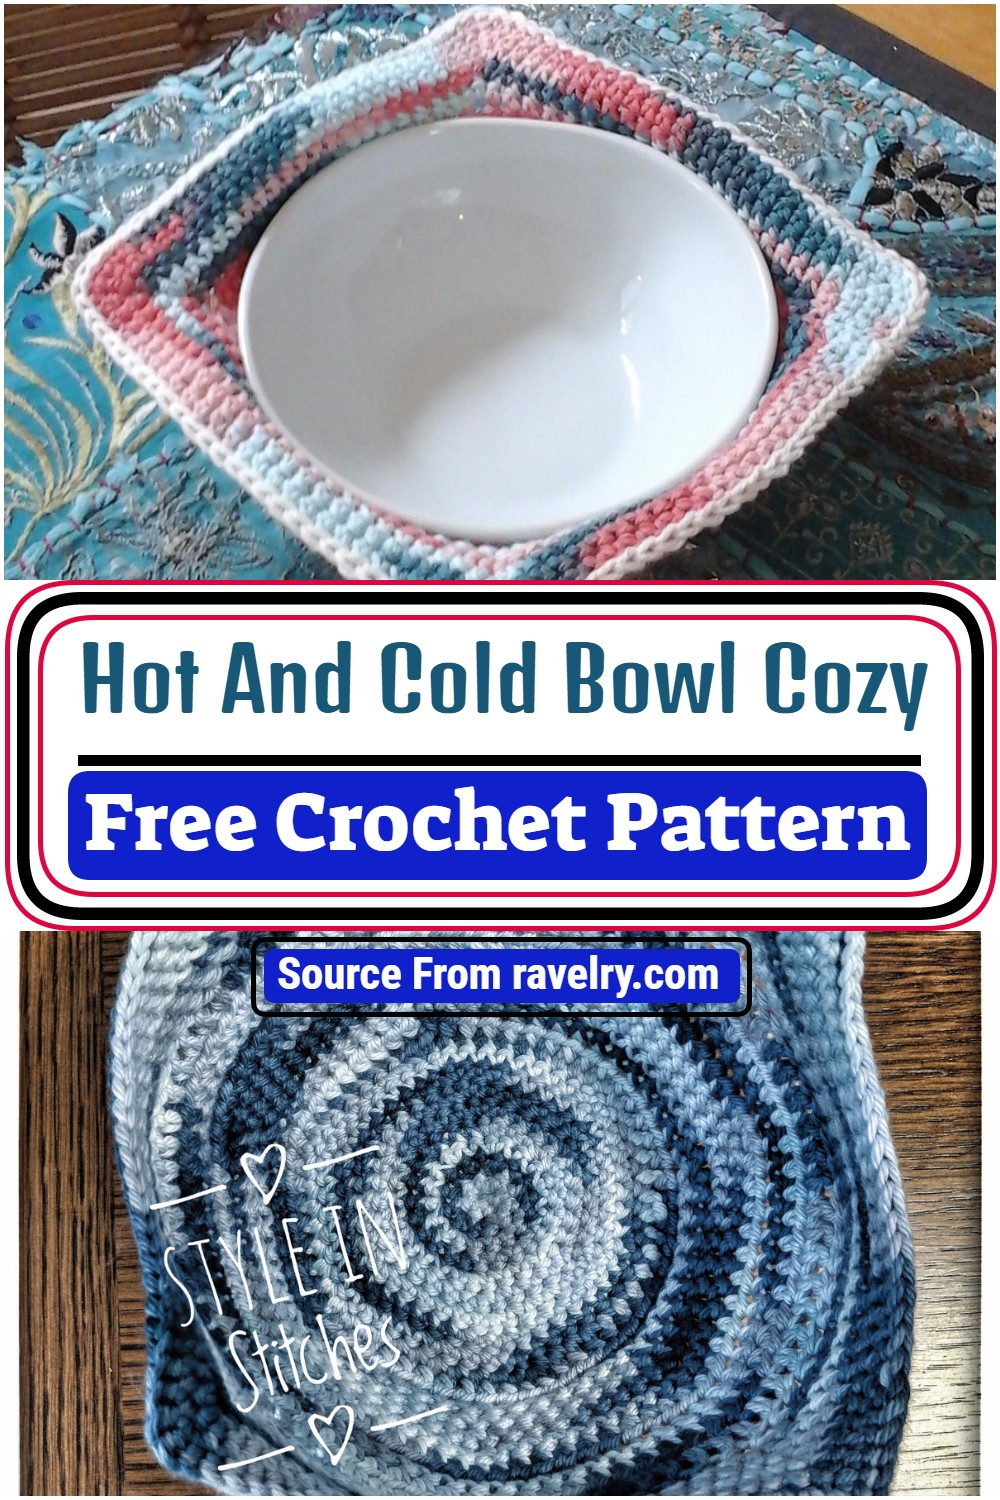 Crochet Hot And Cold Bowl Cozy